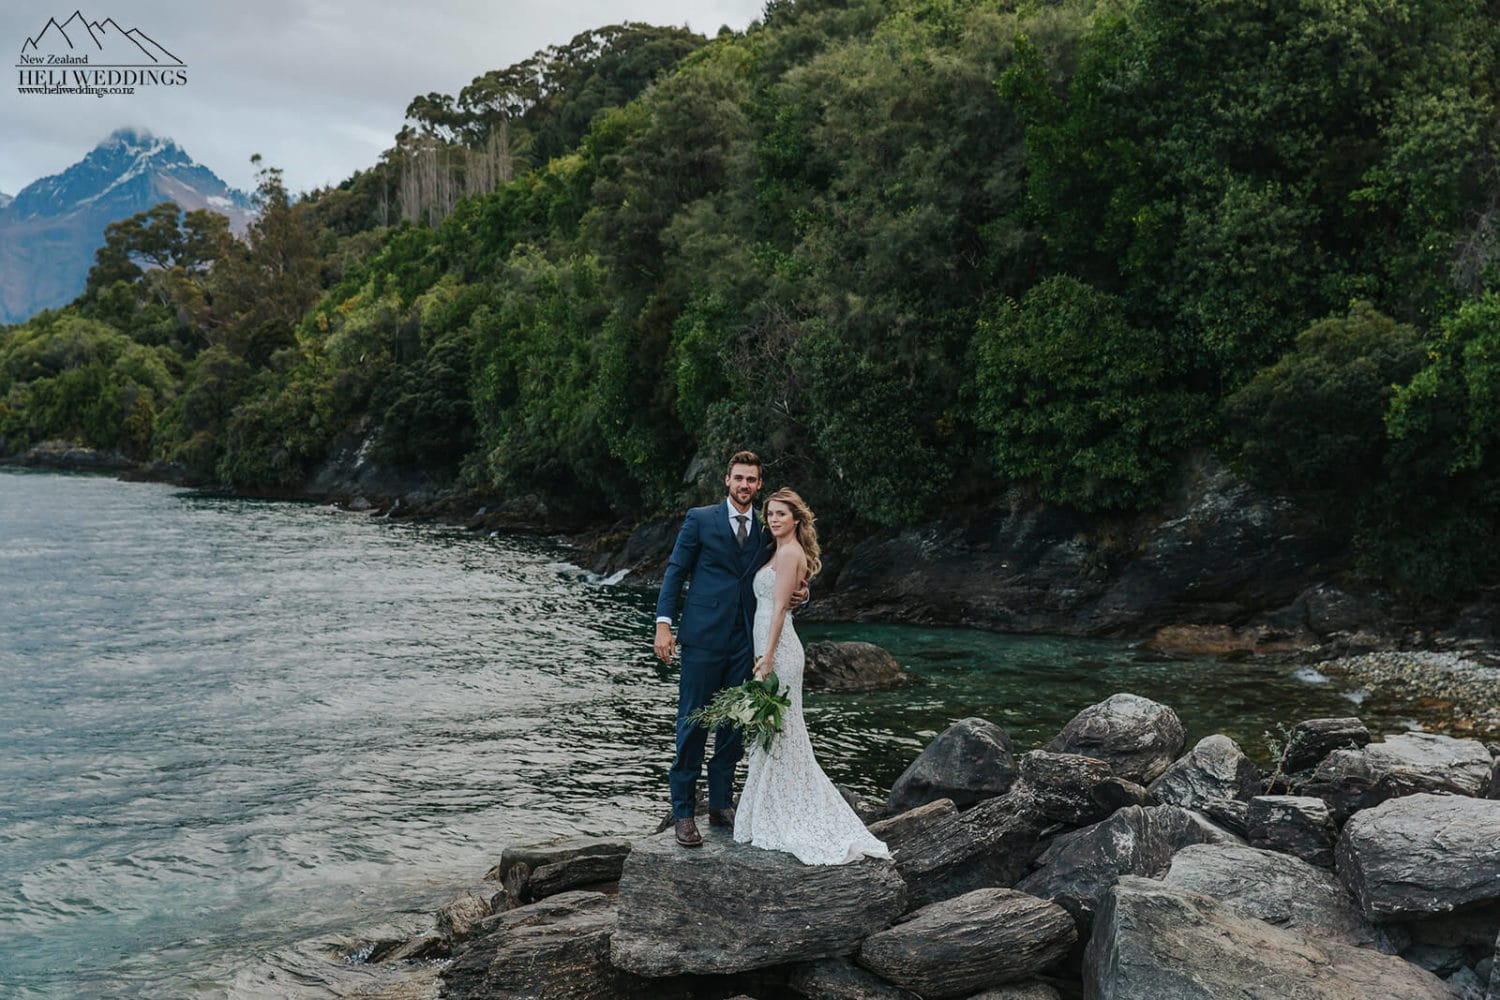 Wedding by the lake in Queenstown, Queenstown Wedding package